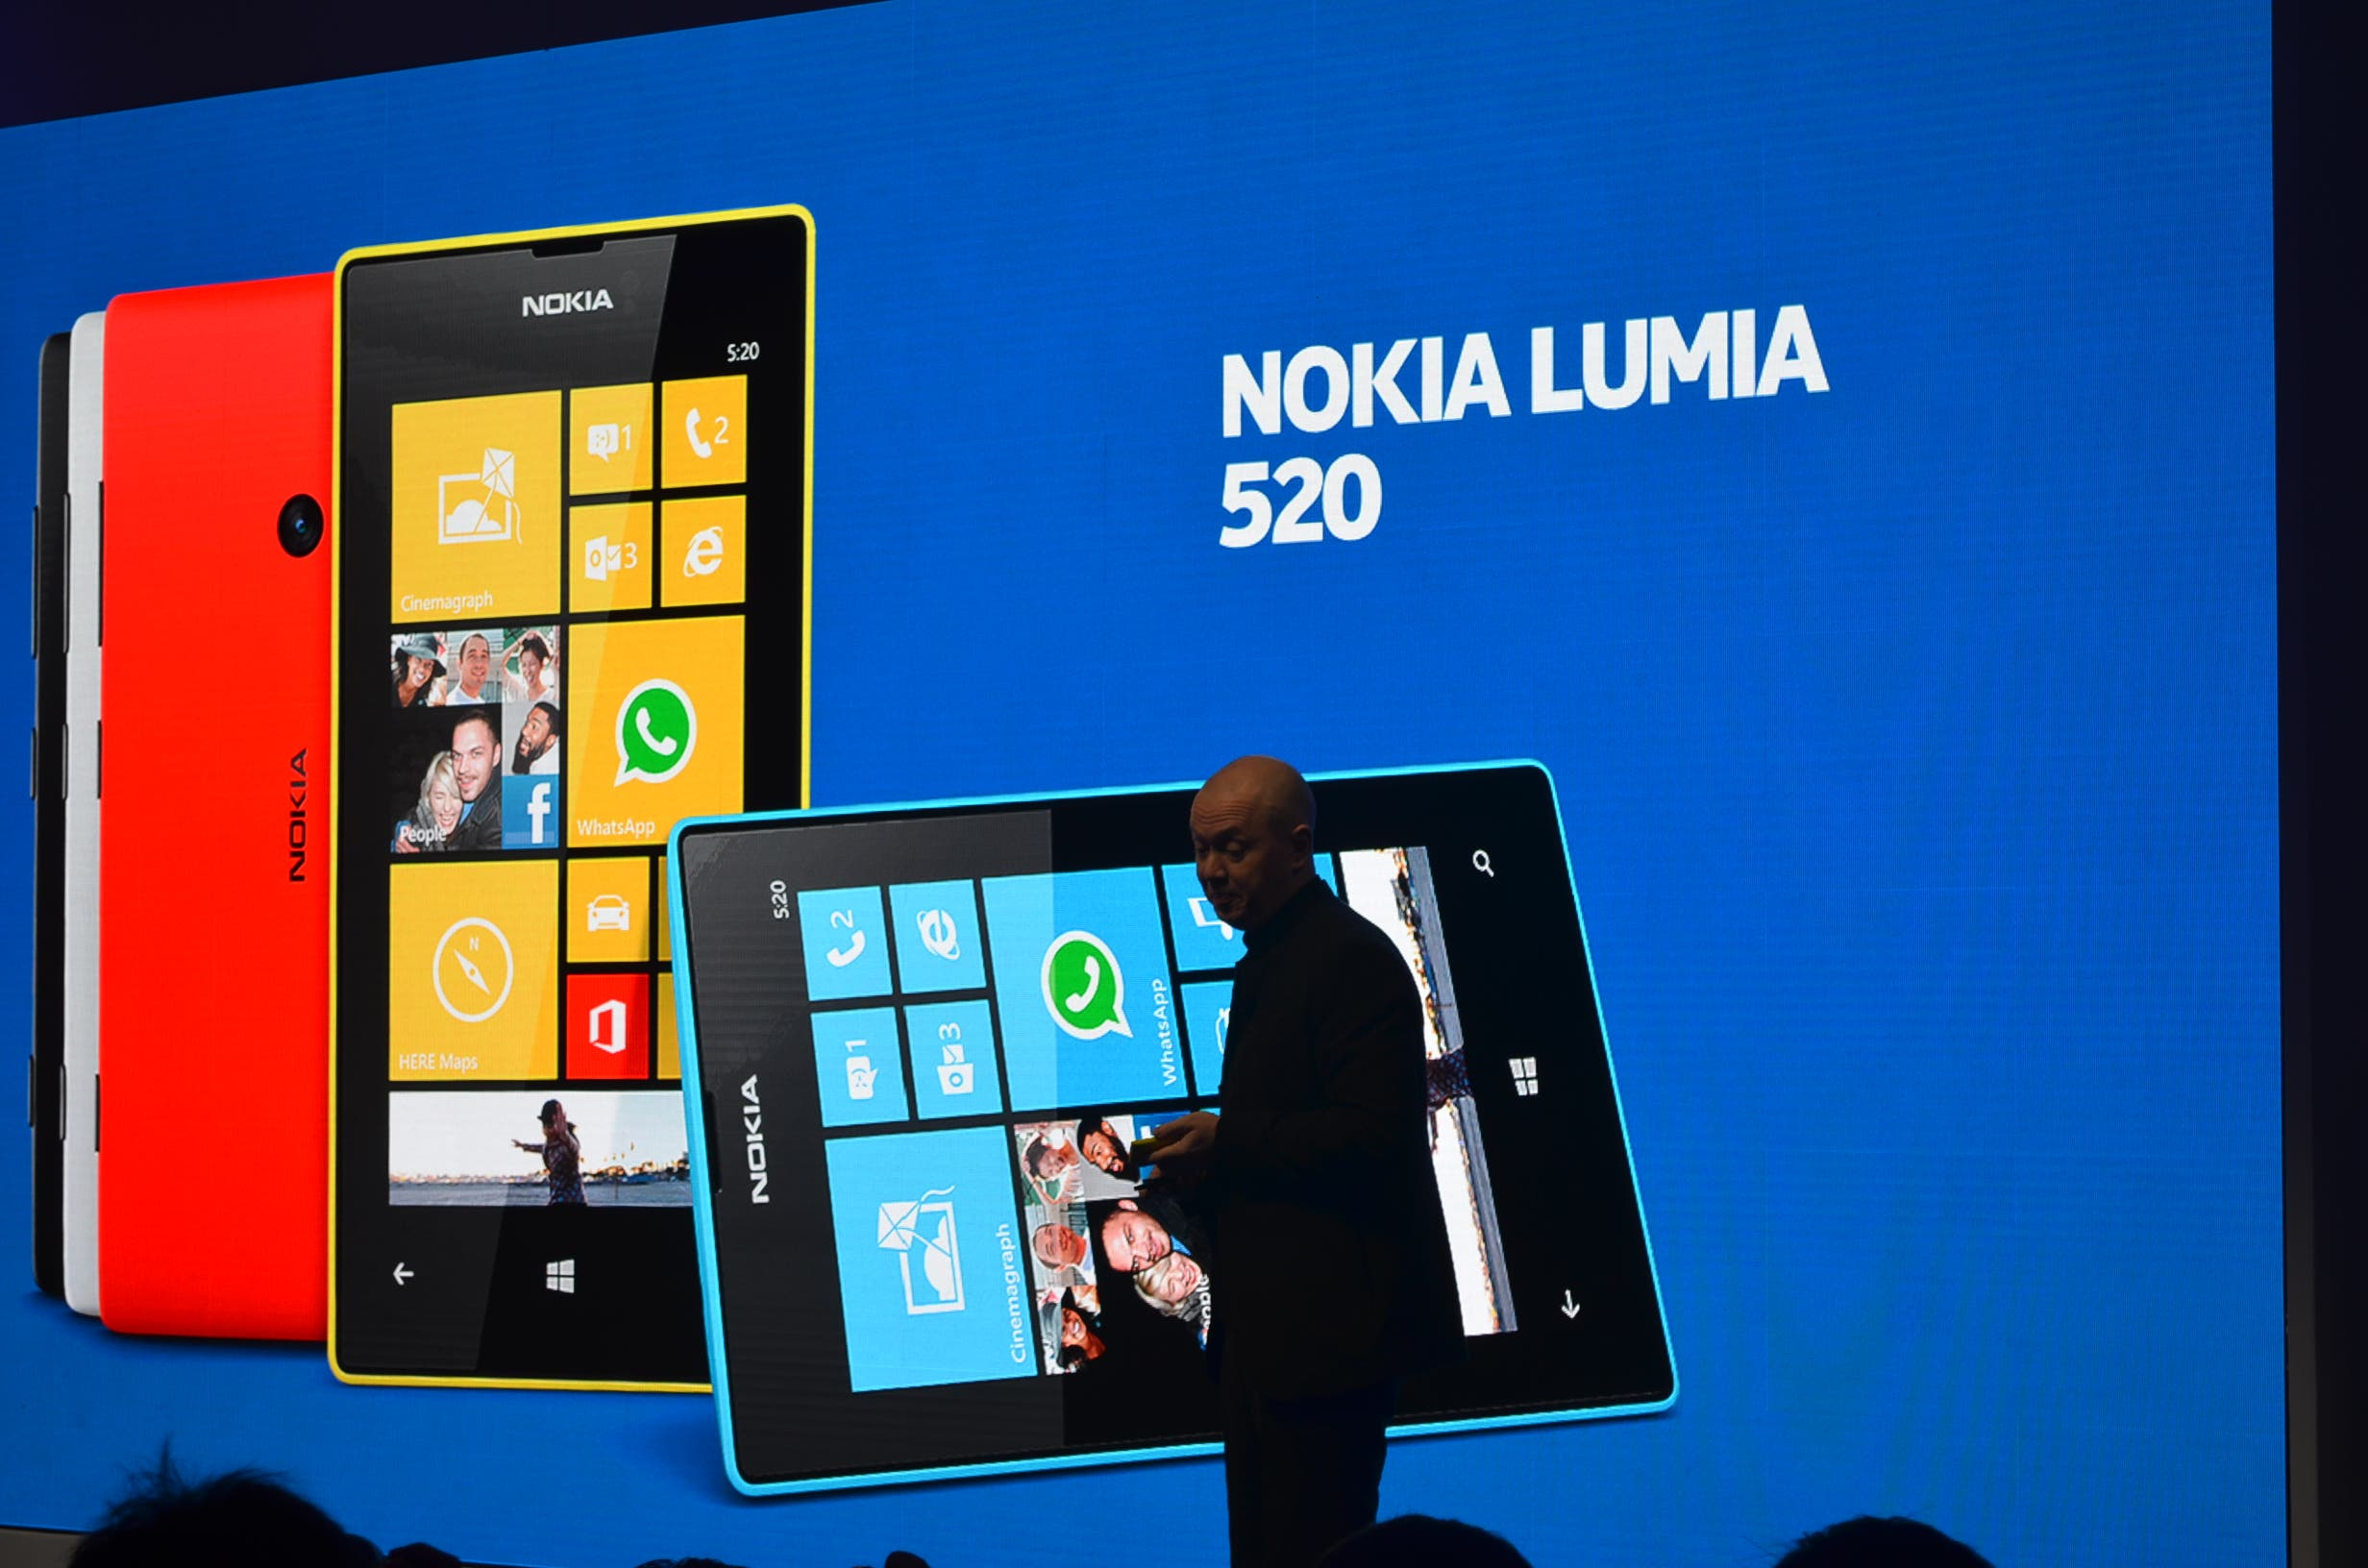 MWC: Nokia Lumia 520 im deutschen Hands-on Video